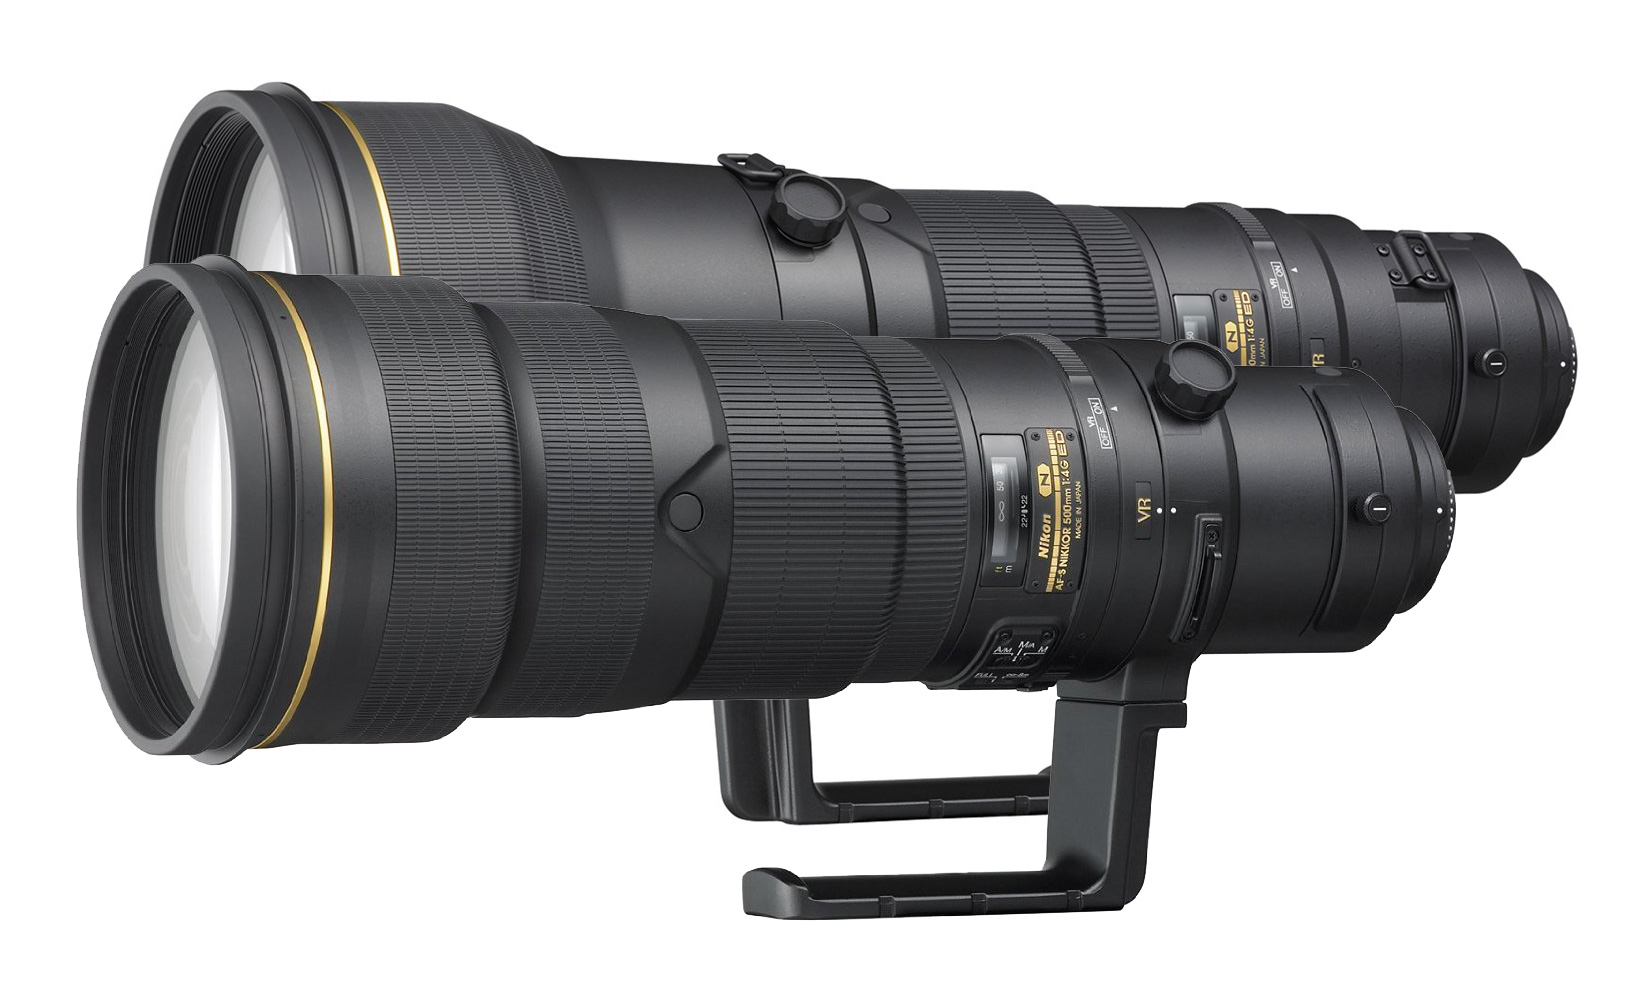 DxOMark tested the Nikon's super telephoto prime lenses AF-S NIKKOR